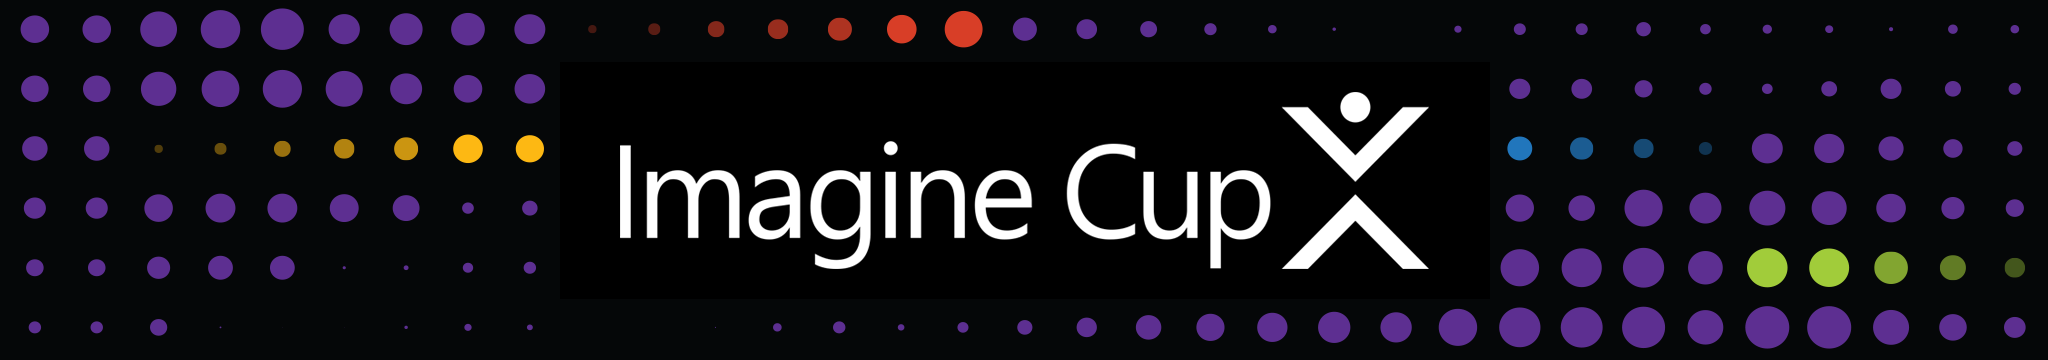 2020 Imagine Cup EMEA Online Semifinals